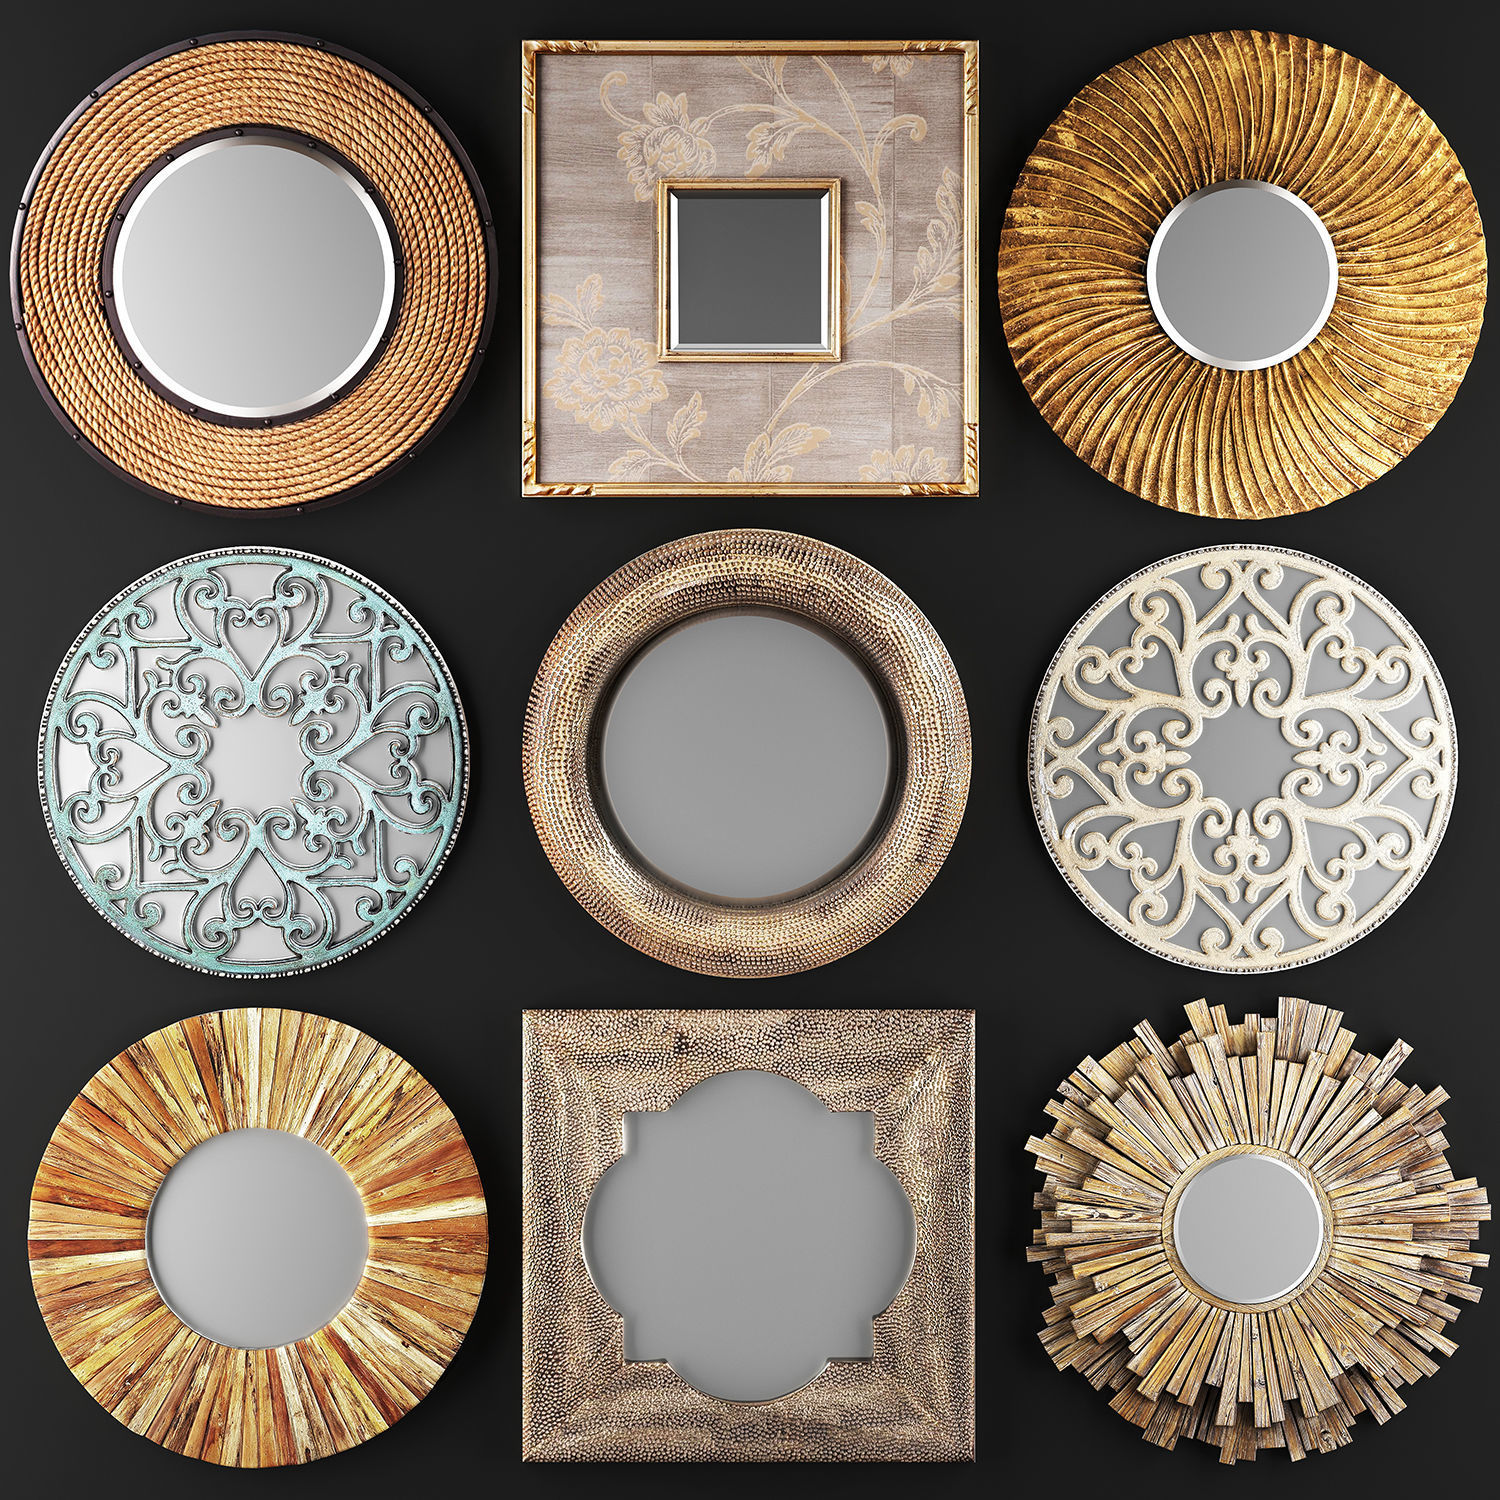 Collection of decorative mirrors